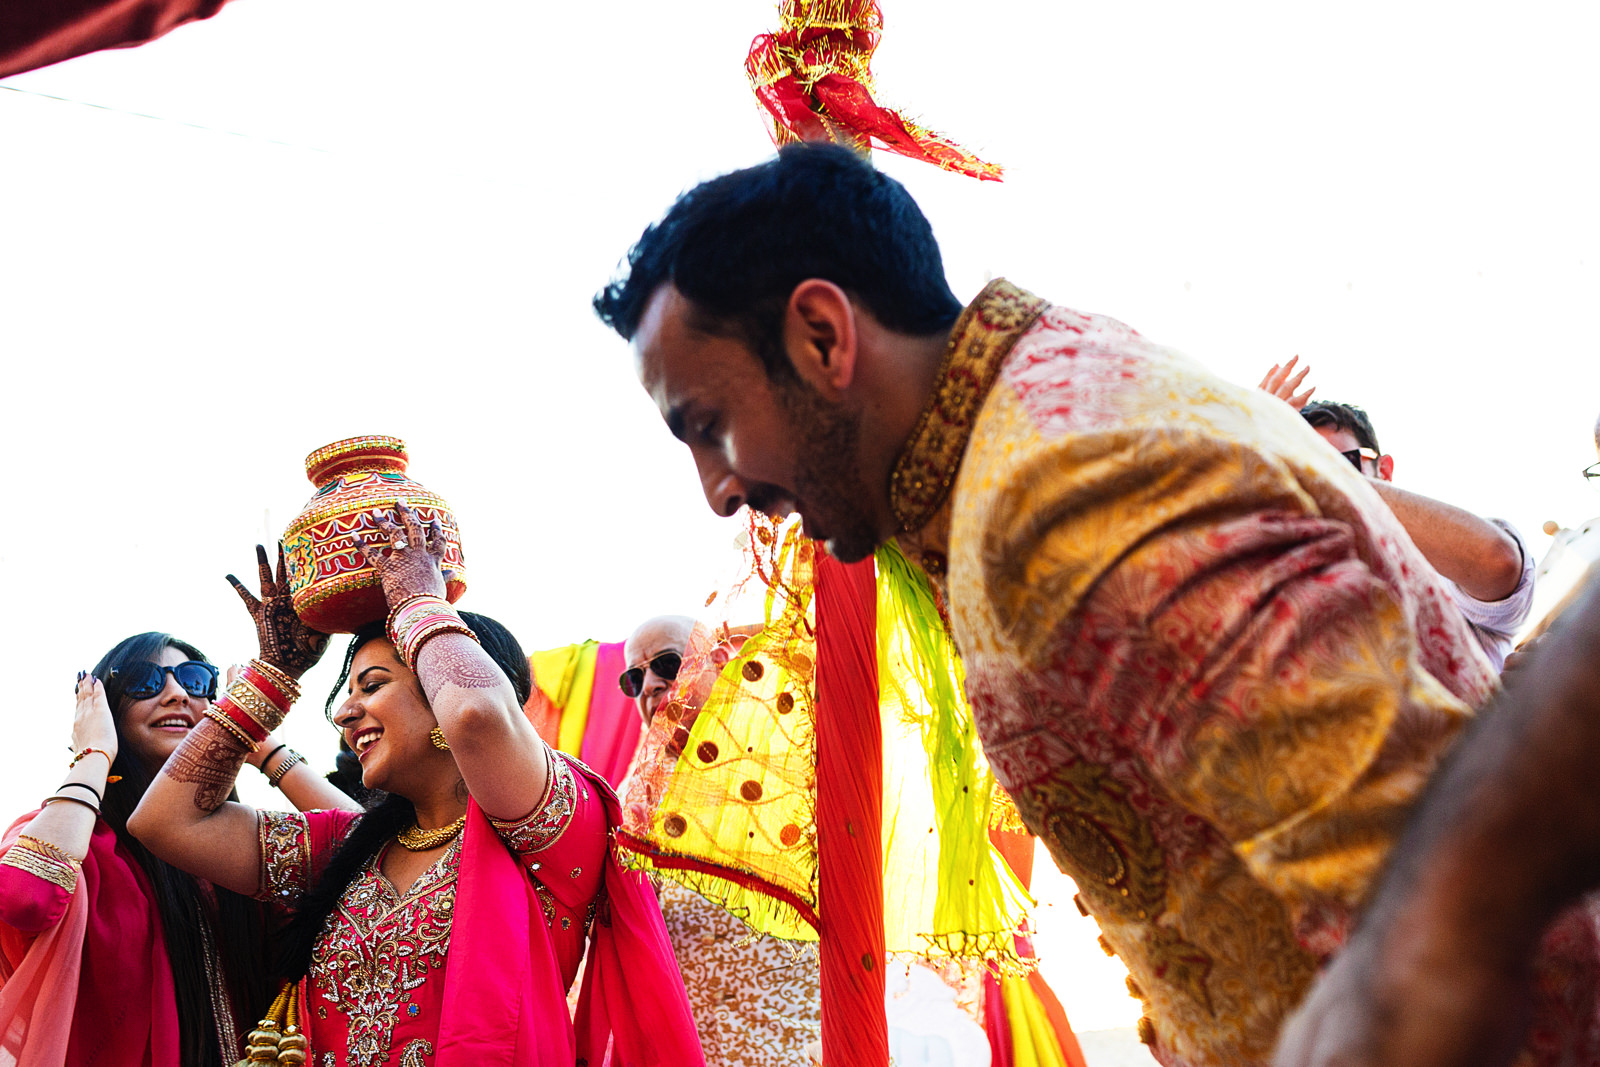 Bride and groom dance at traditional hindu party